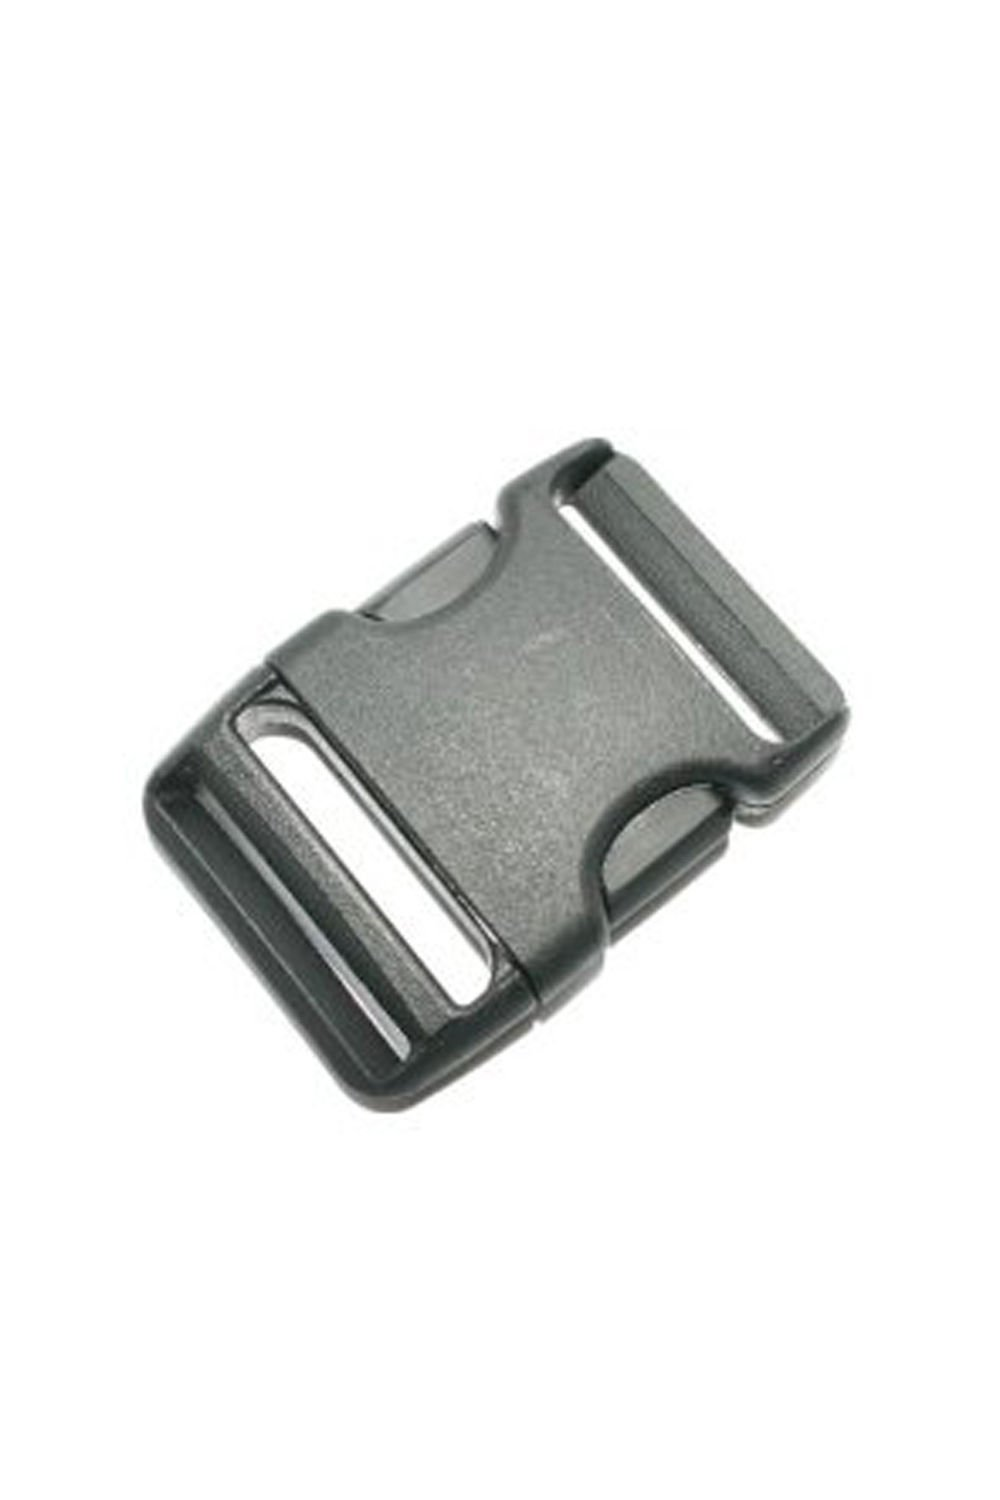 1 X 38mm Side Release Buckle Podsacs